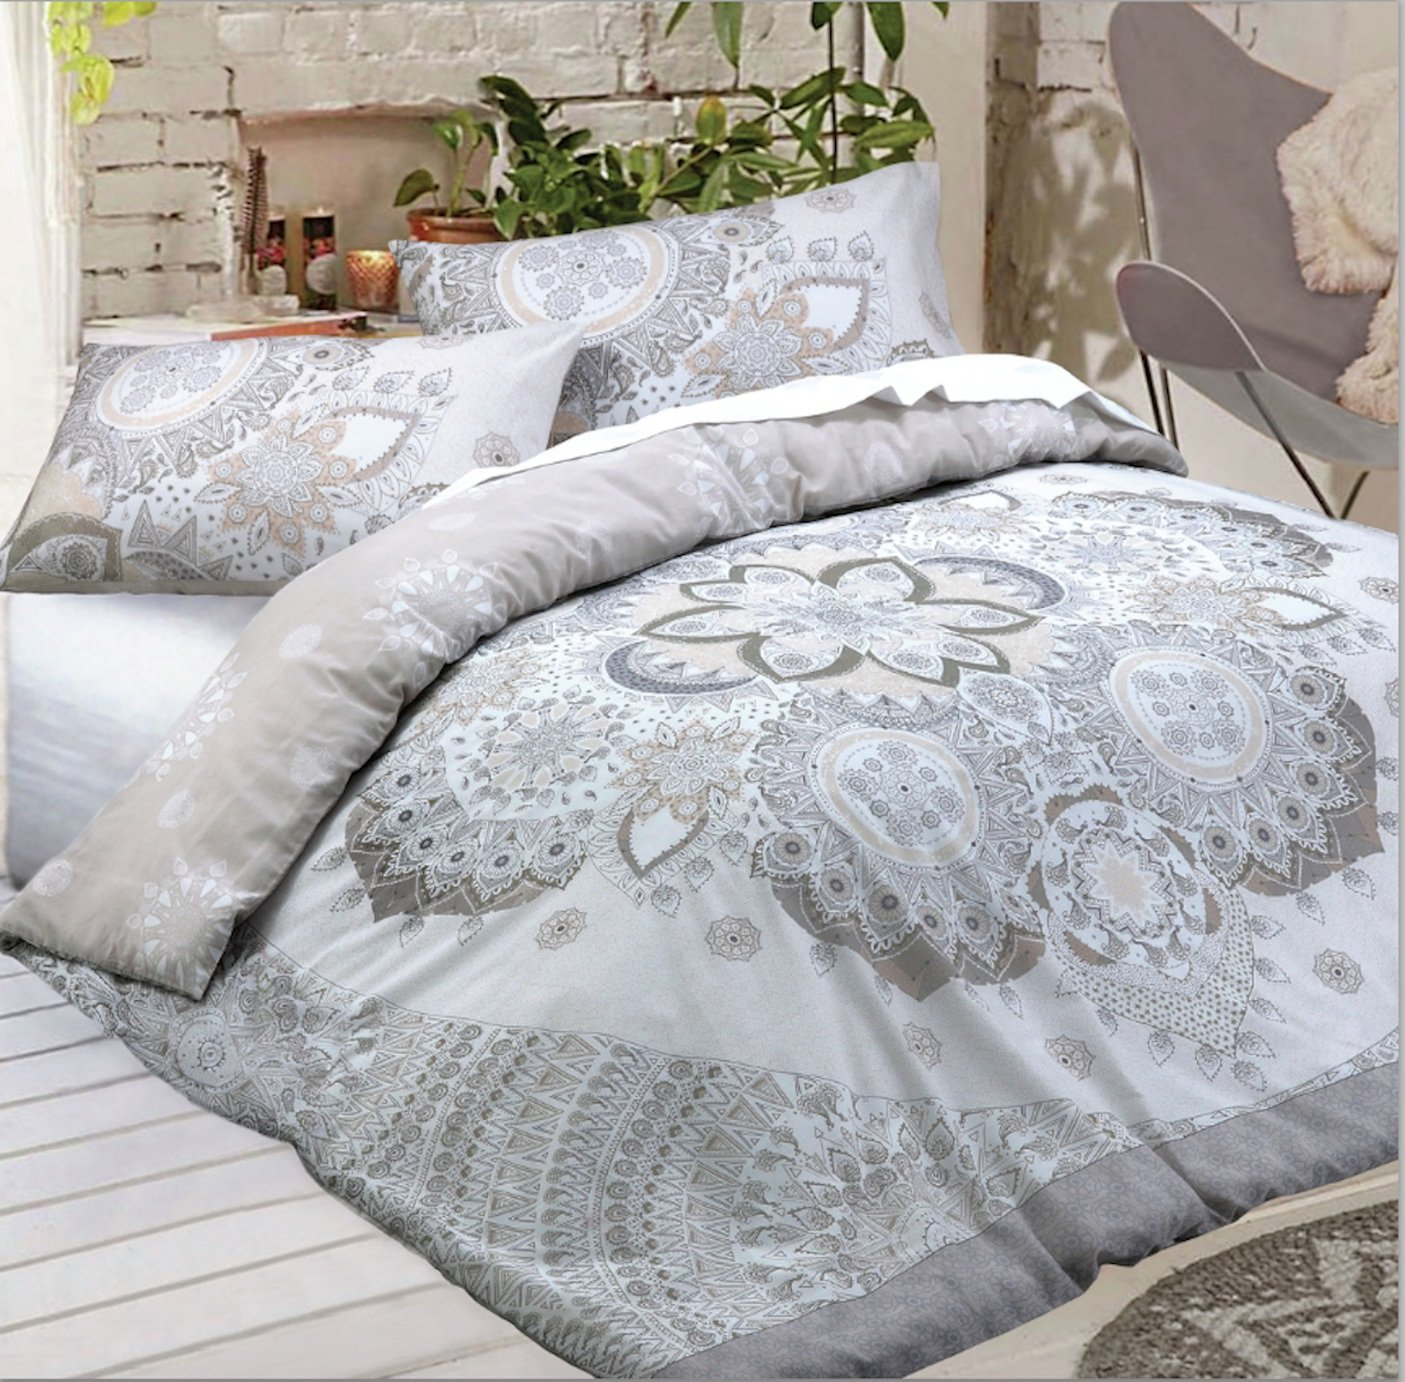 Argos Home Celestrial Mandala Bedding Set - Single